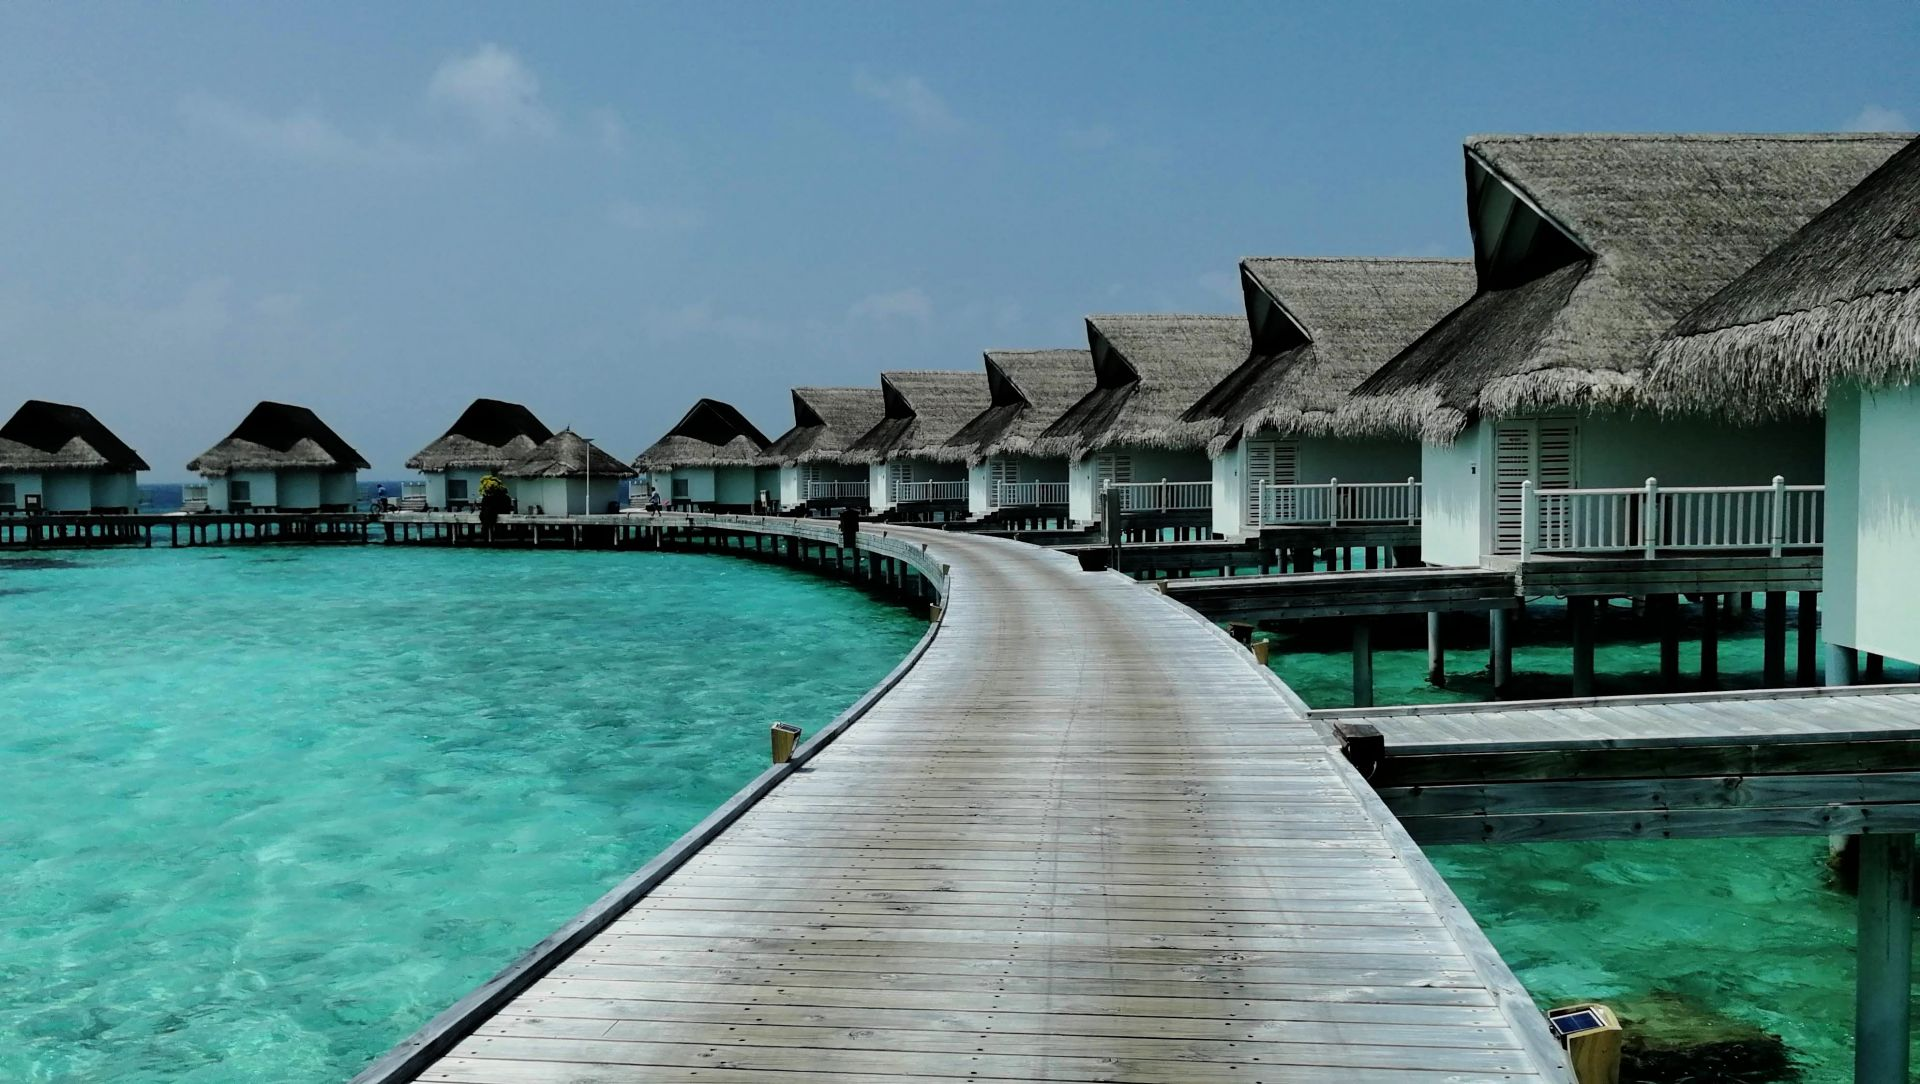 Centara Grand Island Resort & Spa, Maldives